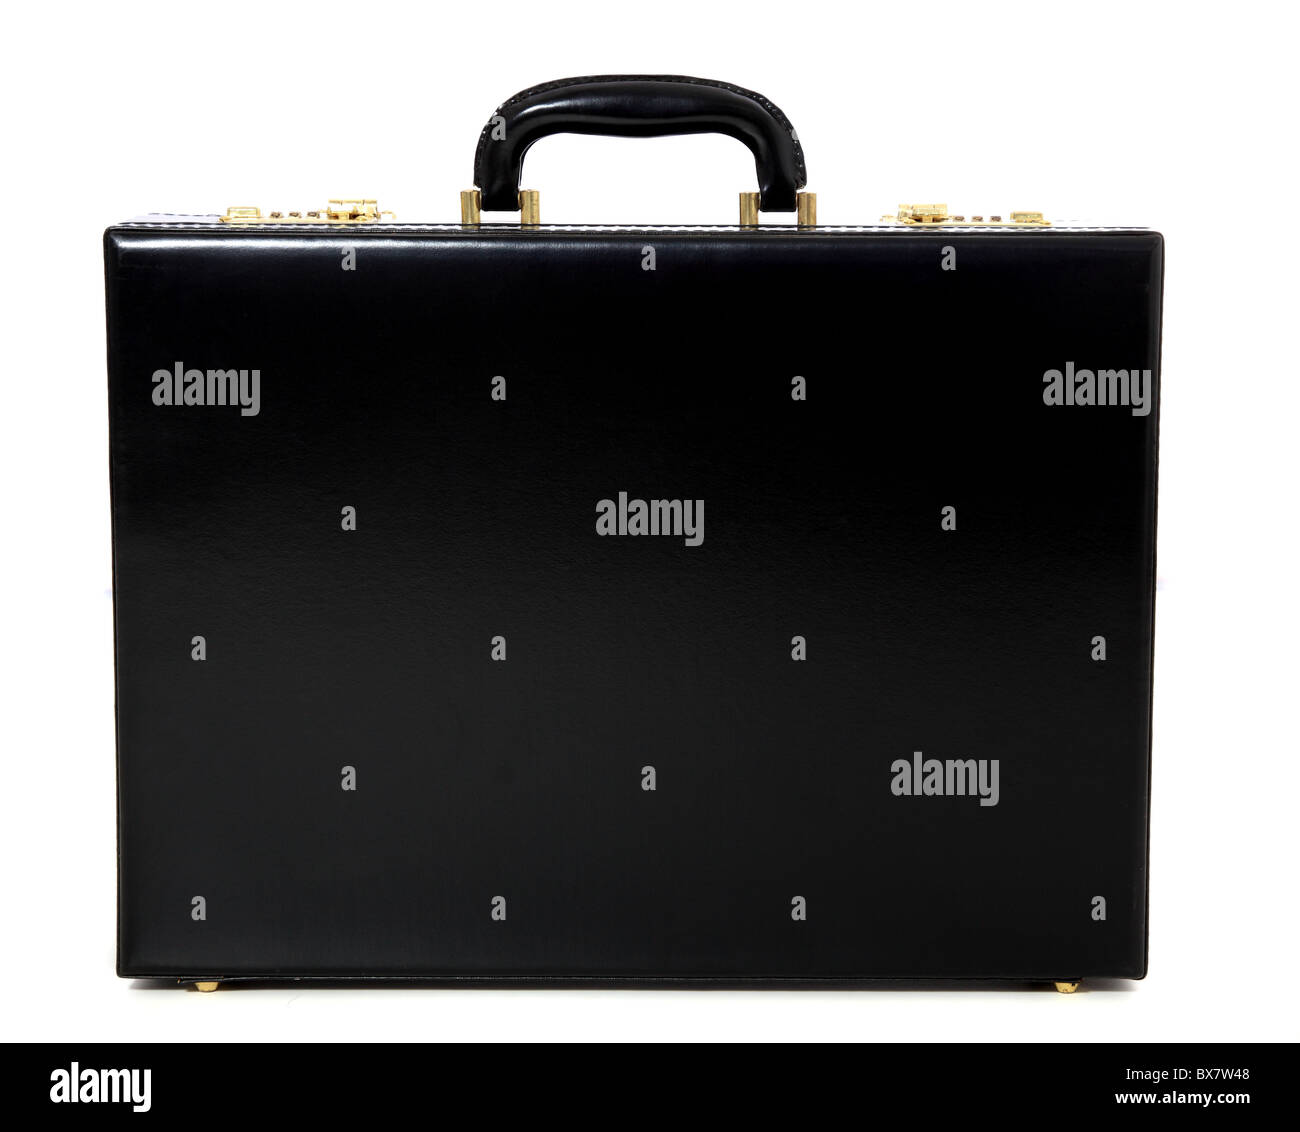 Standard black briefcase. All on white background. - Stock Image